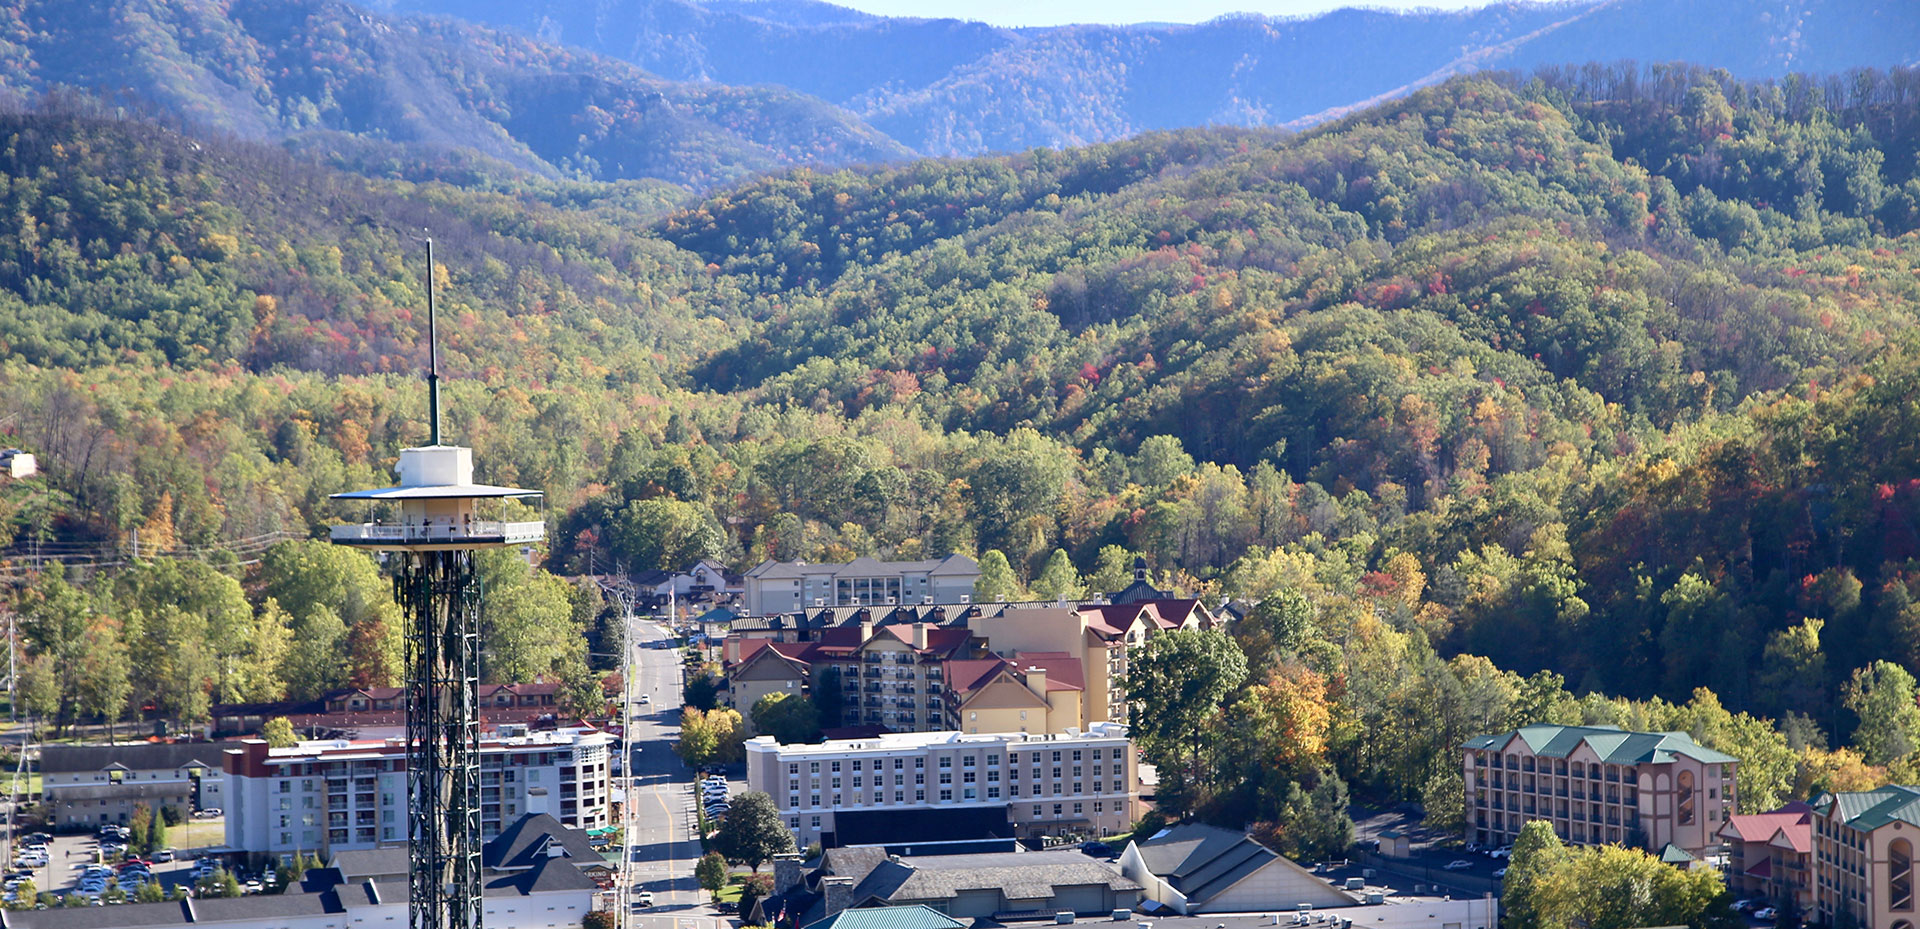 The Space Needle Viewed from the SkyLift | Gatlinburg Attractions | Things To Do In Gatlinburg, TN